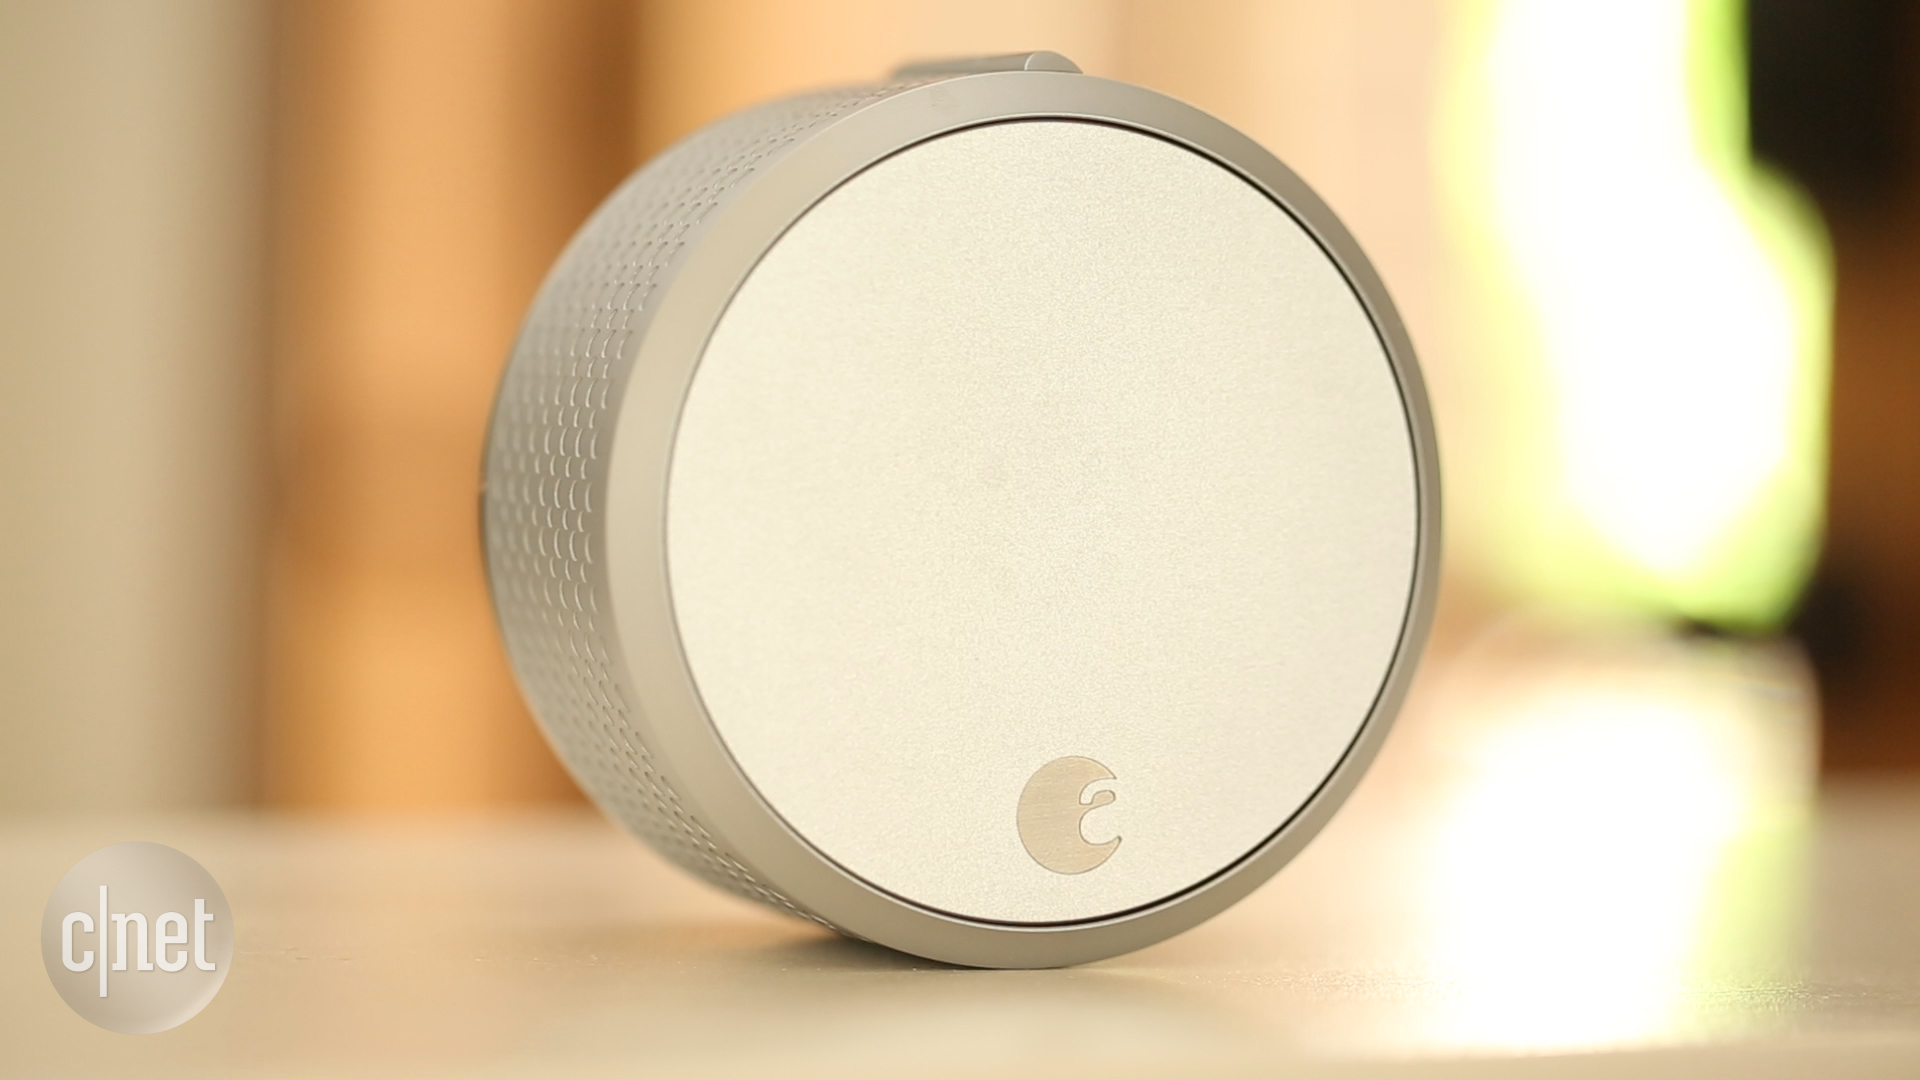 August's latest Smart Lock gives Siri the keys to your house